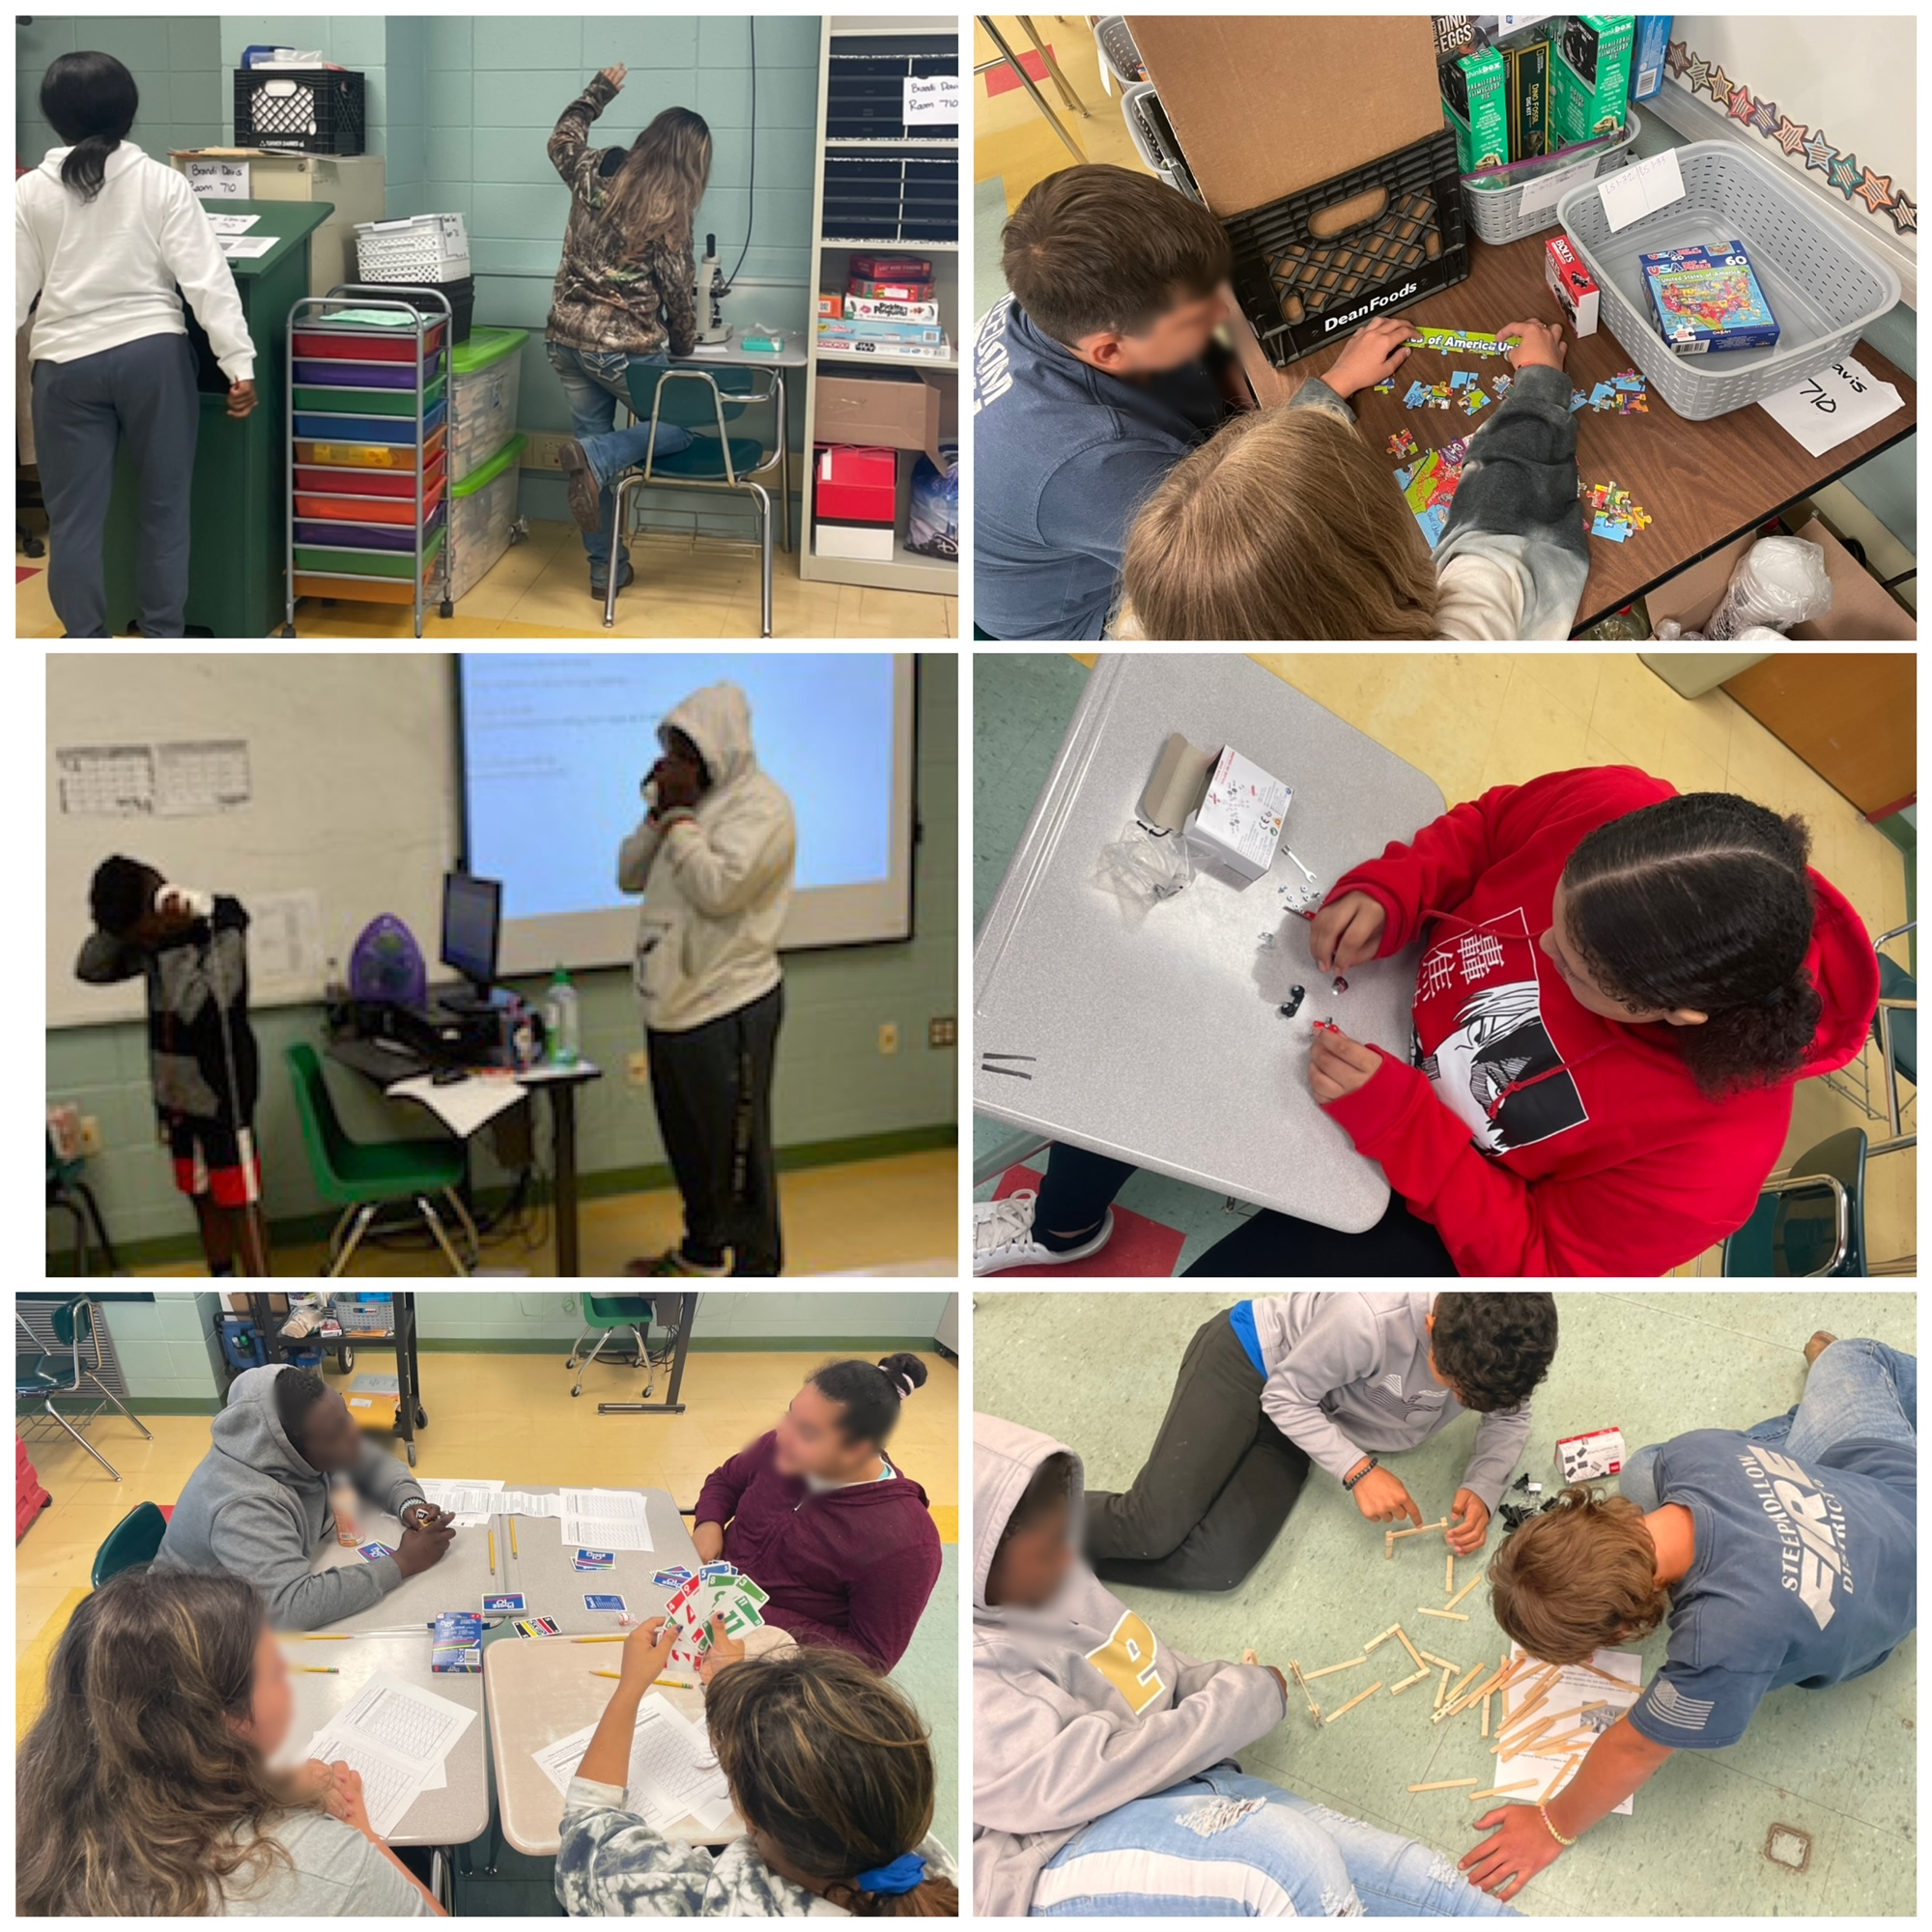 Students participate in hands-on activites.